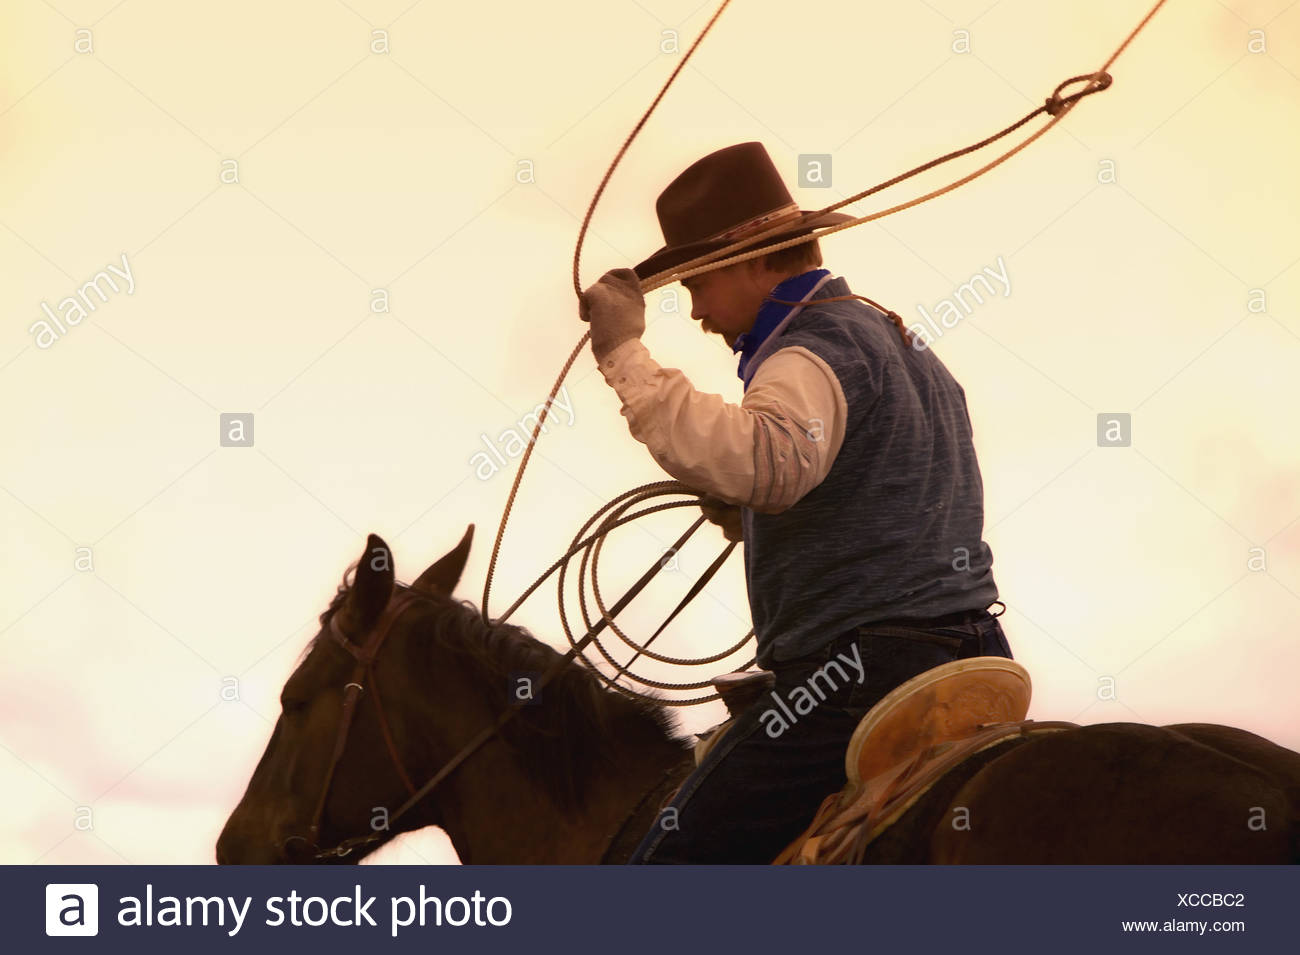 Cowboy with lasso - Stock Image